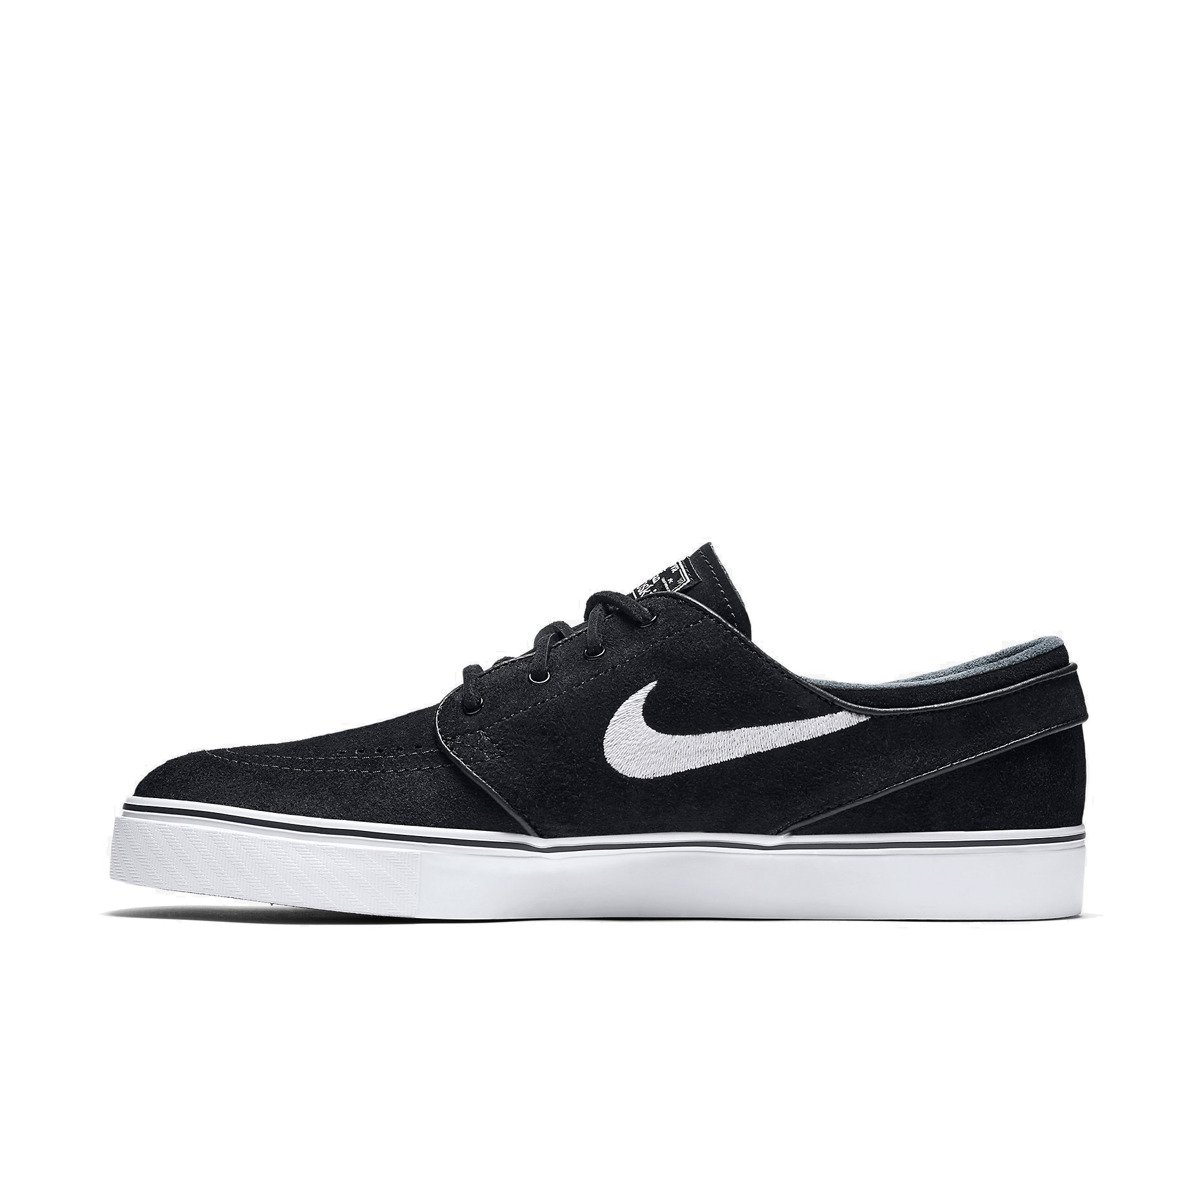 miniramp skateshop buty nike sb air zoom stefan janoski og black white gum light brown. Black Bedroom Furniture Sets. Home Design Ideas